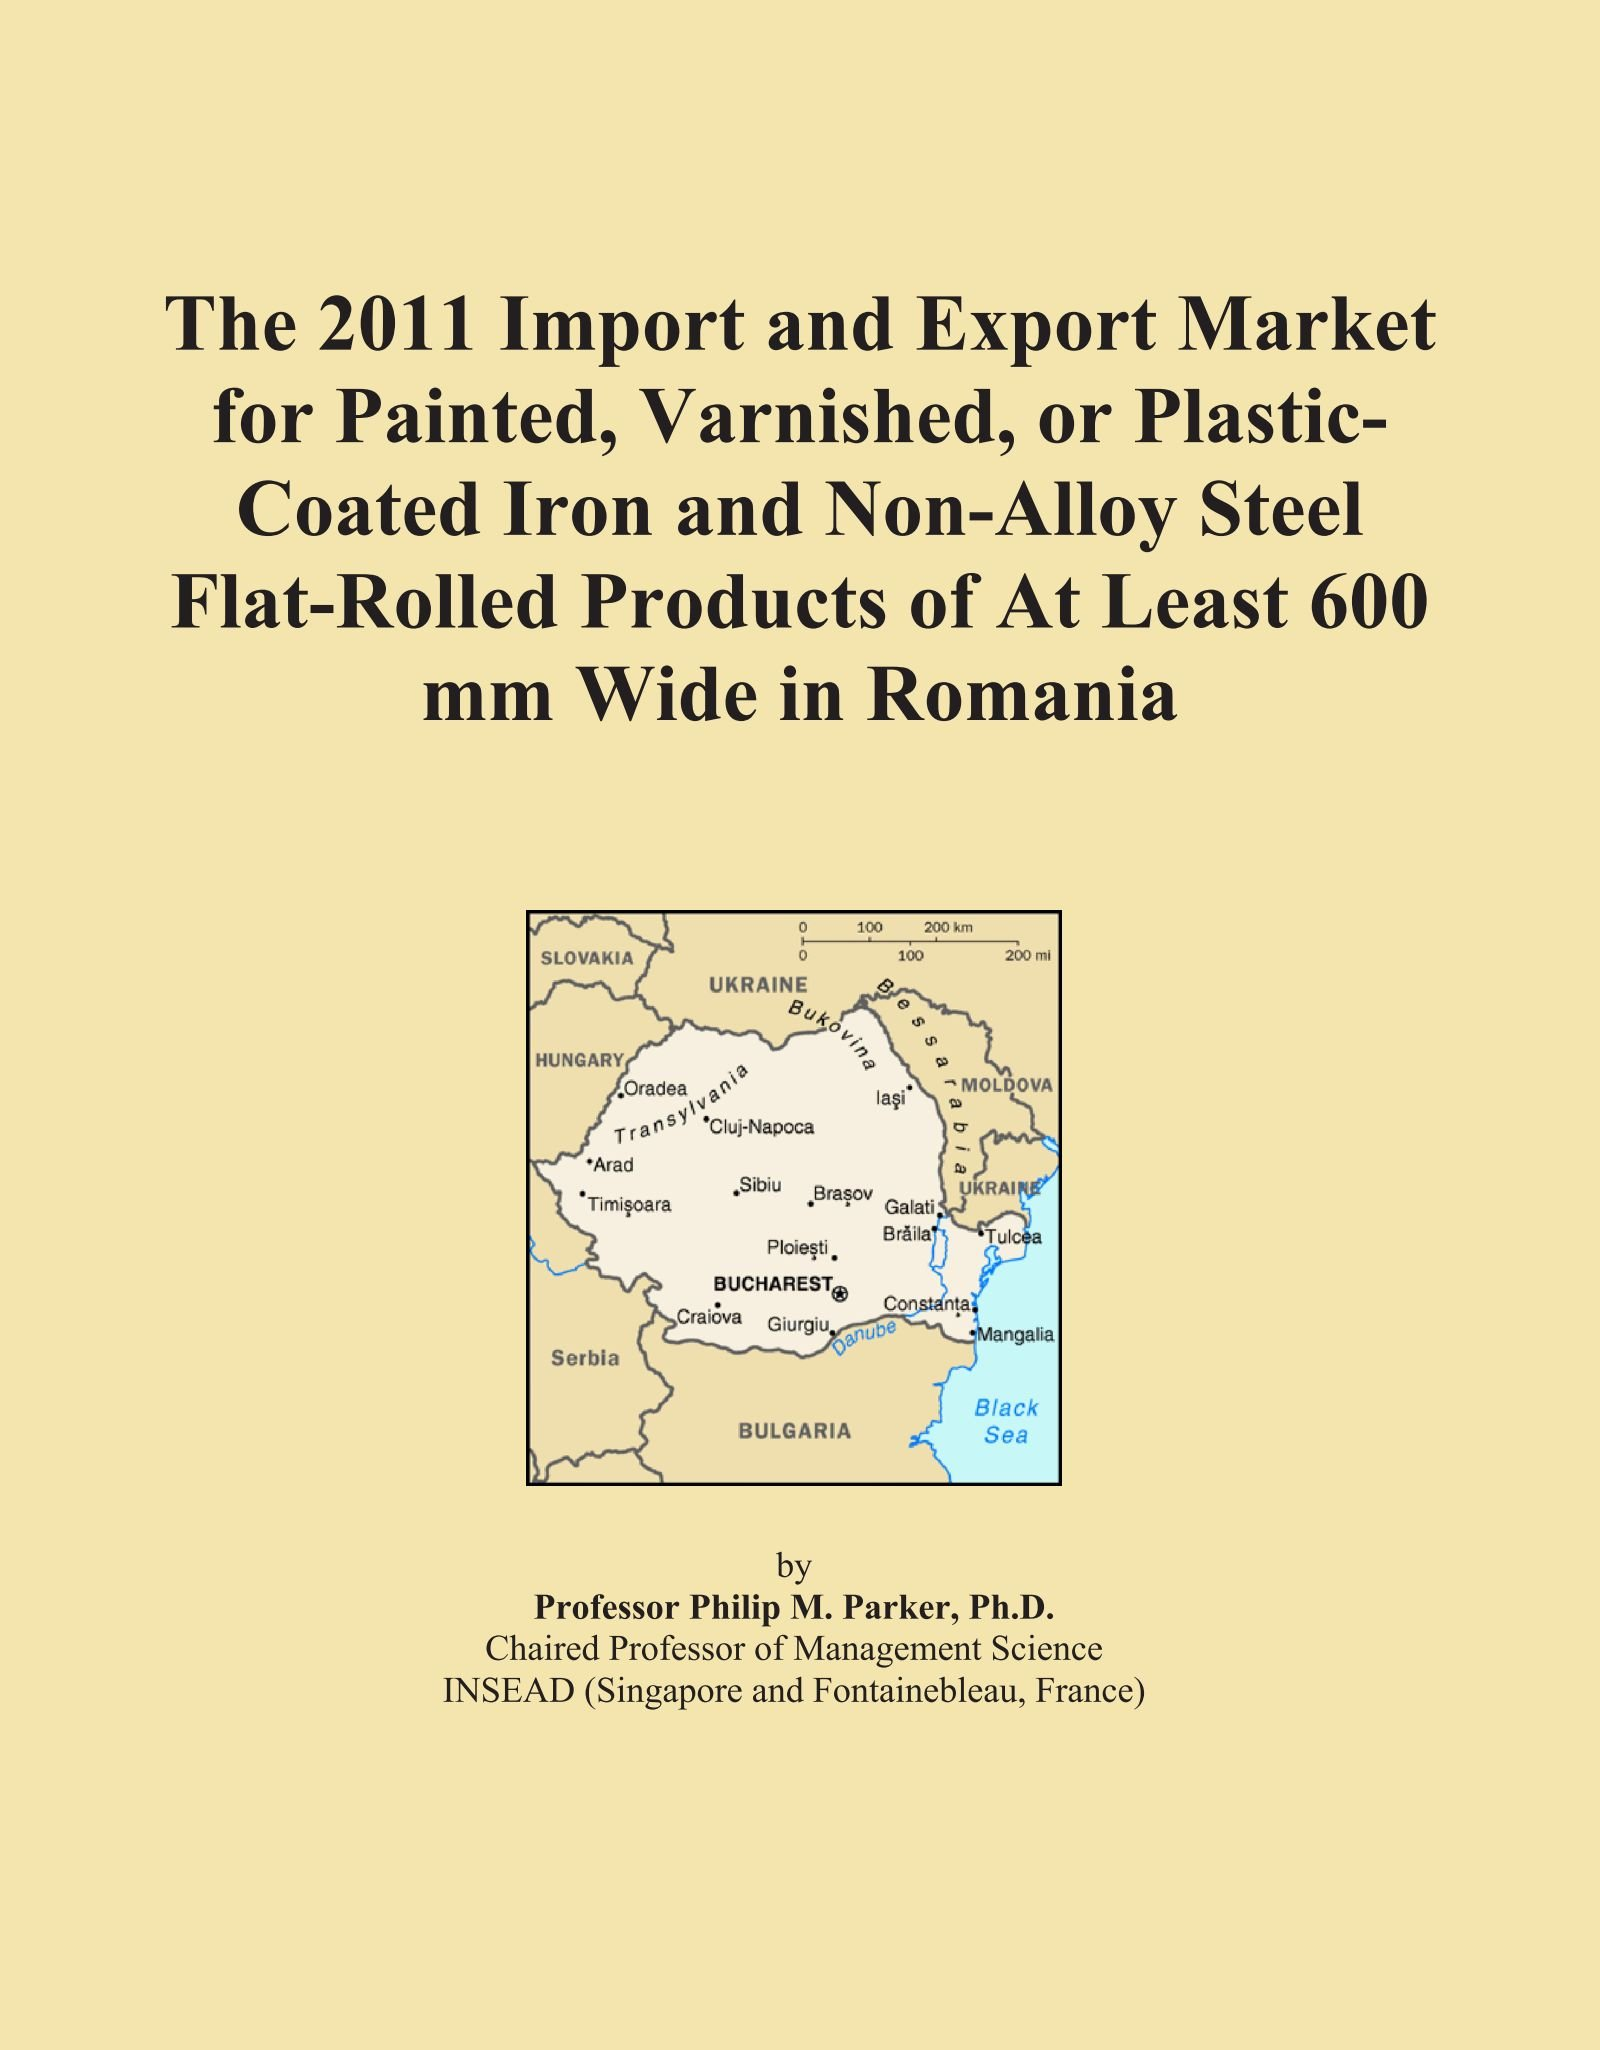 The 2011 Import and Export Market for Painted, Varnished, or Plastic-Coated Iron and Non-Alloy Steel Flat-Rolled Products of At Least 600 mm Wide in Romania ebook